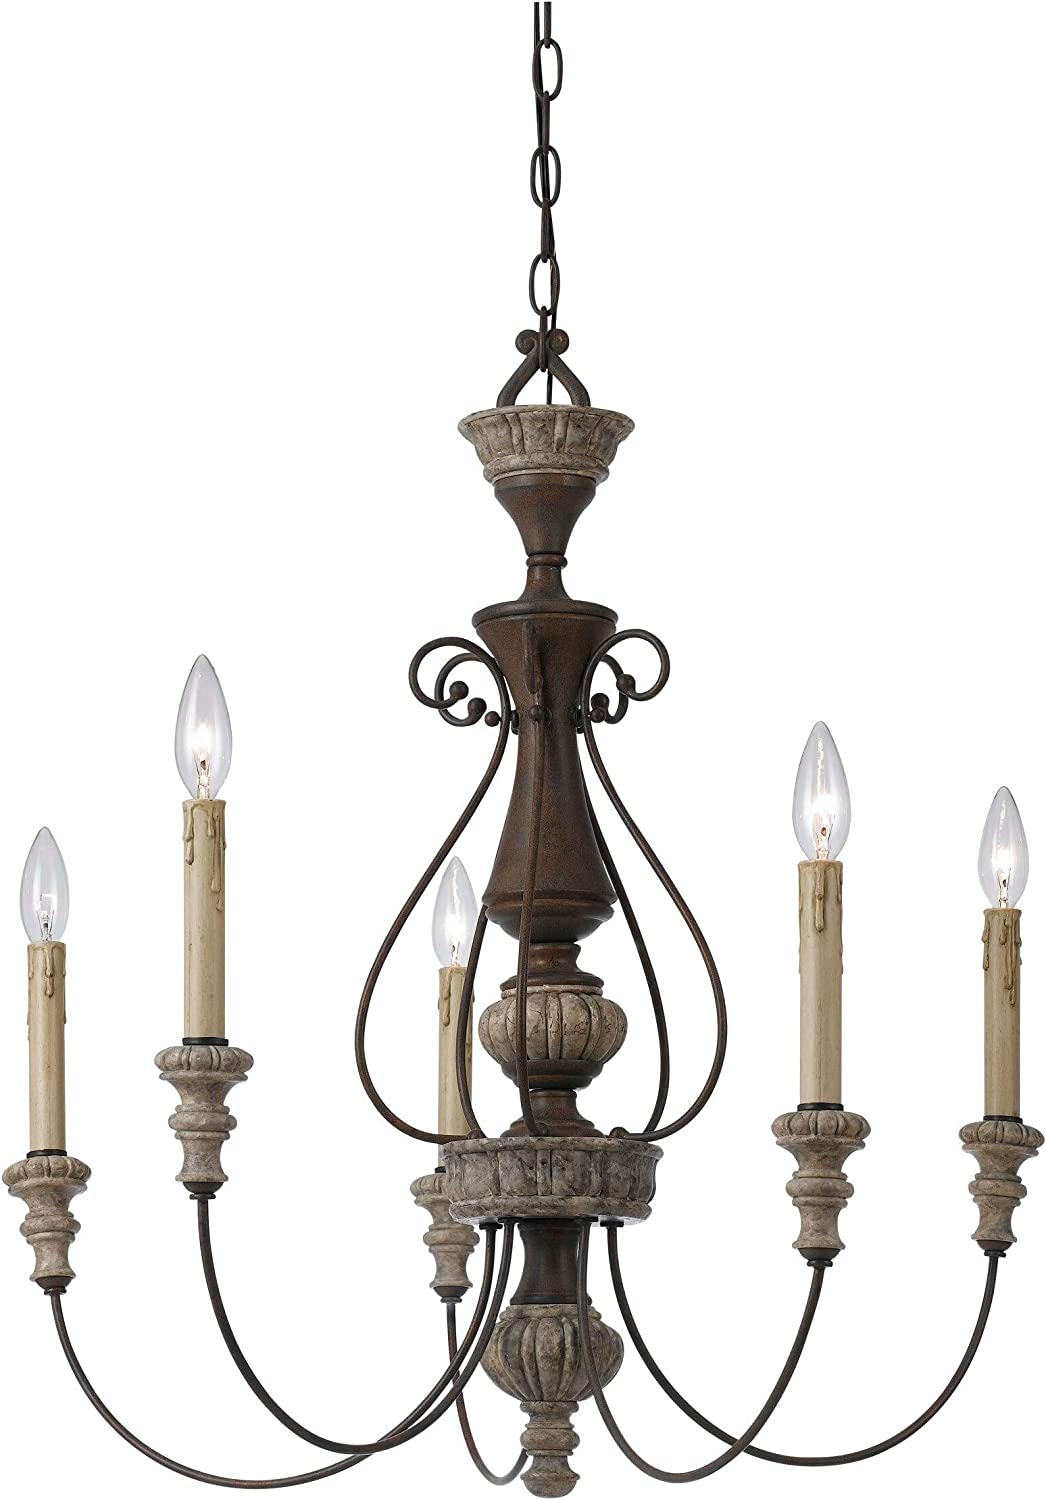 5 Light Metal Candle Chandelier with Ranking TOP8 Scrolled Details Topics on TV Gray B and